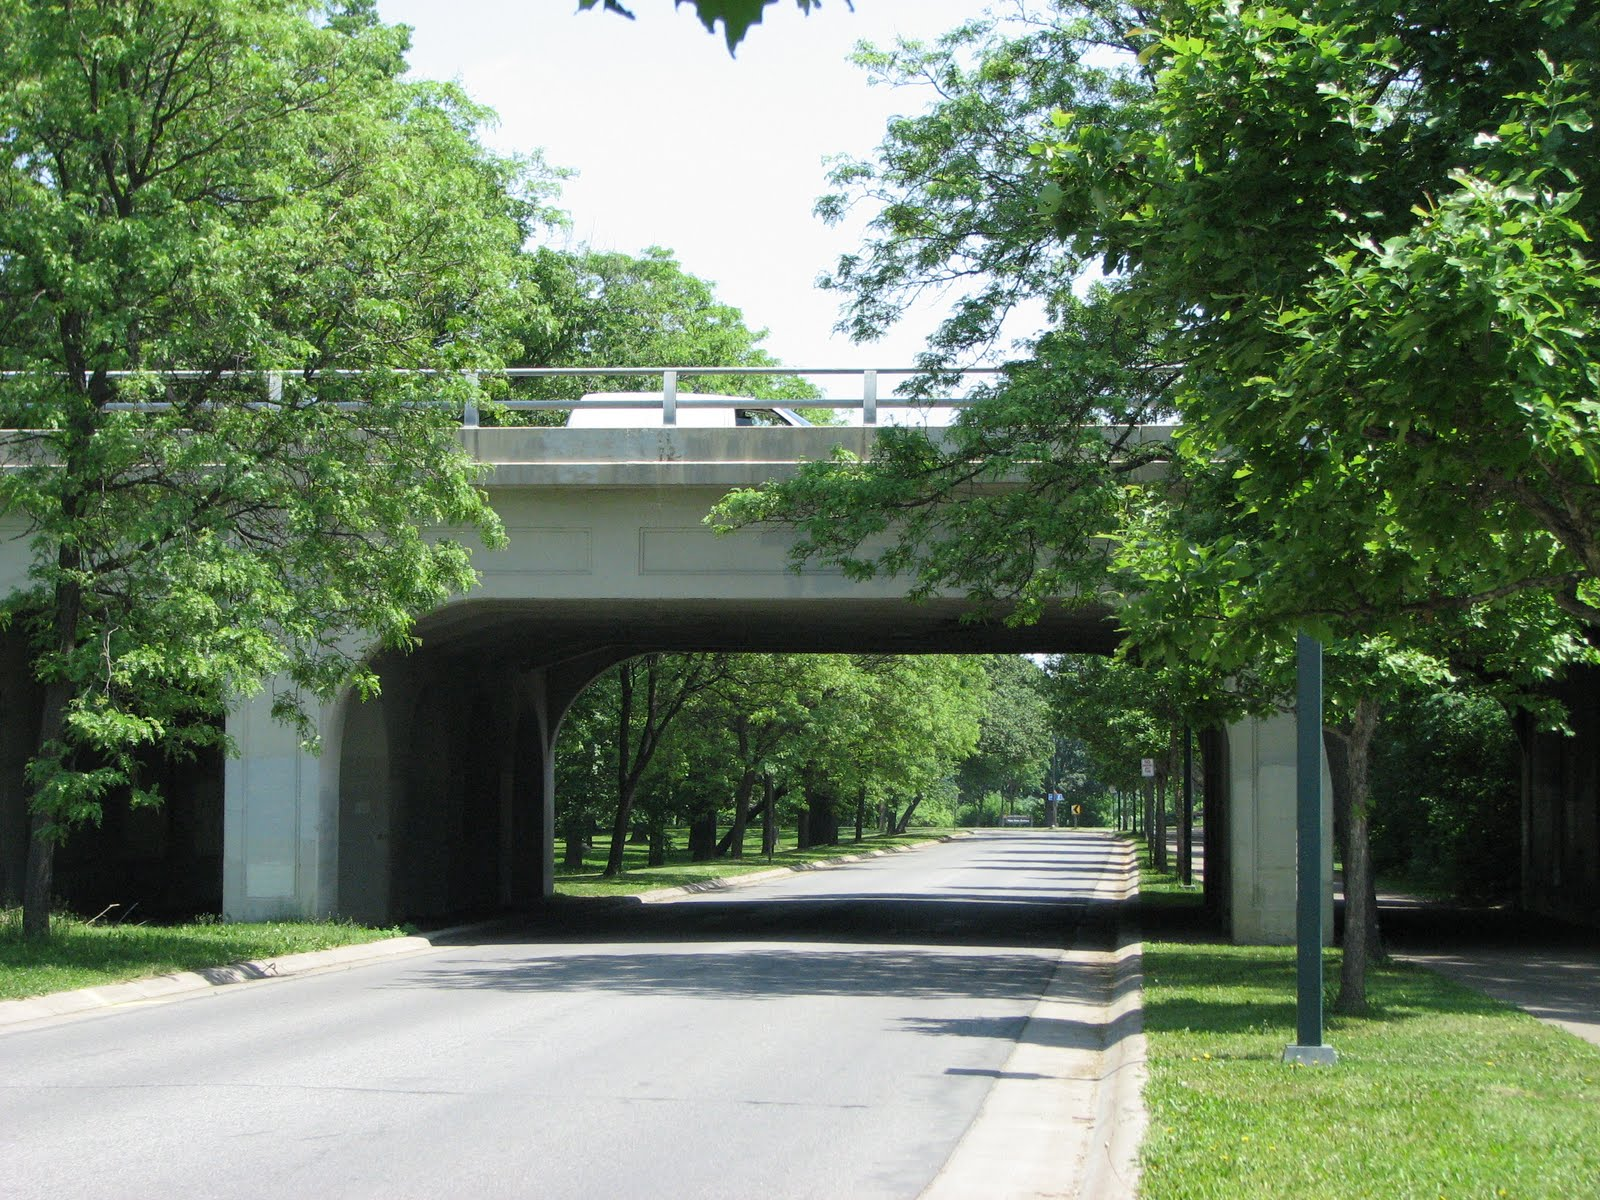 to The Ford Parkway Bridge